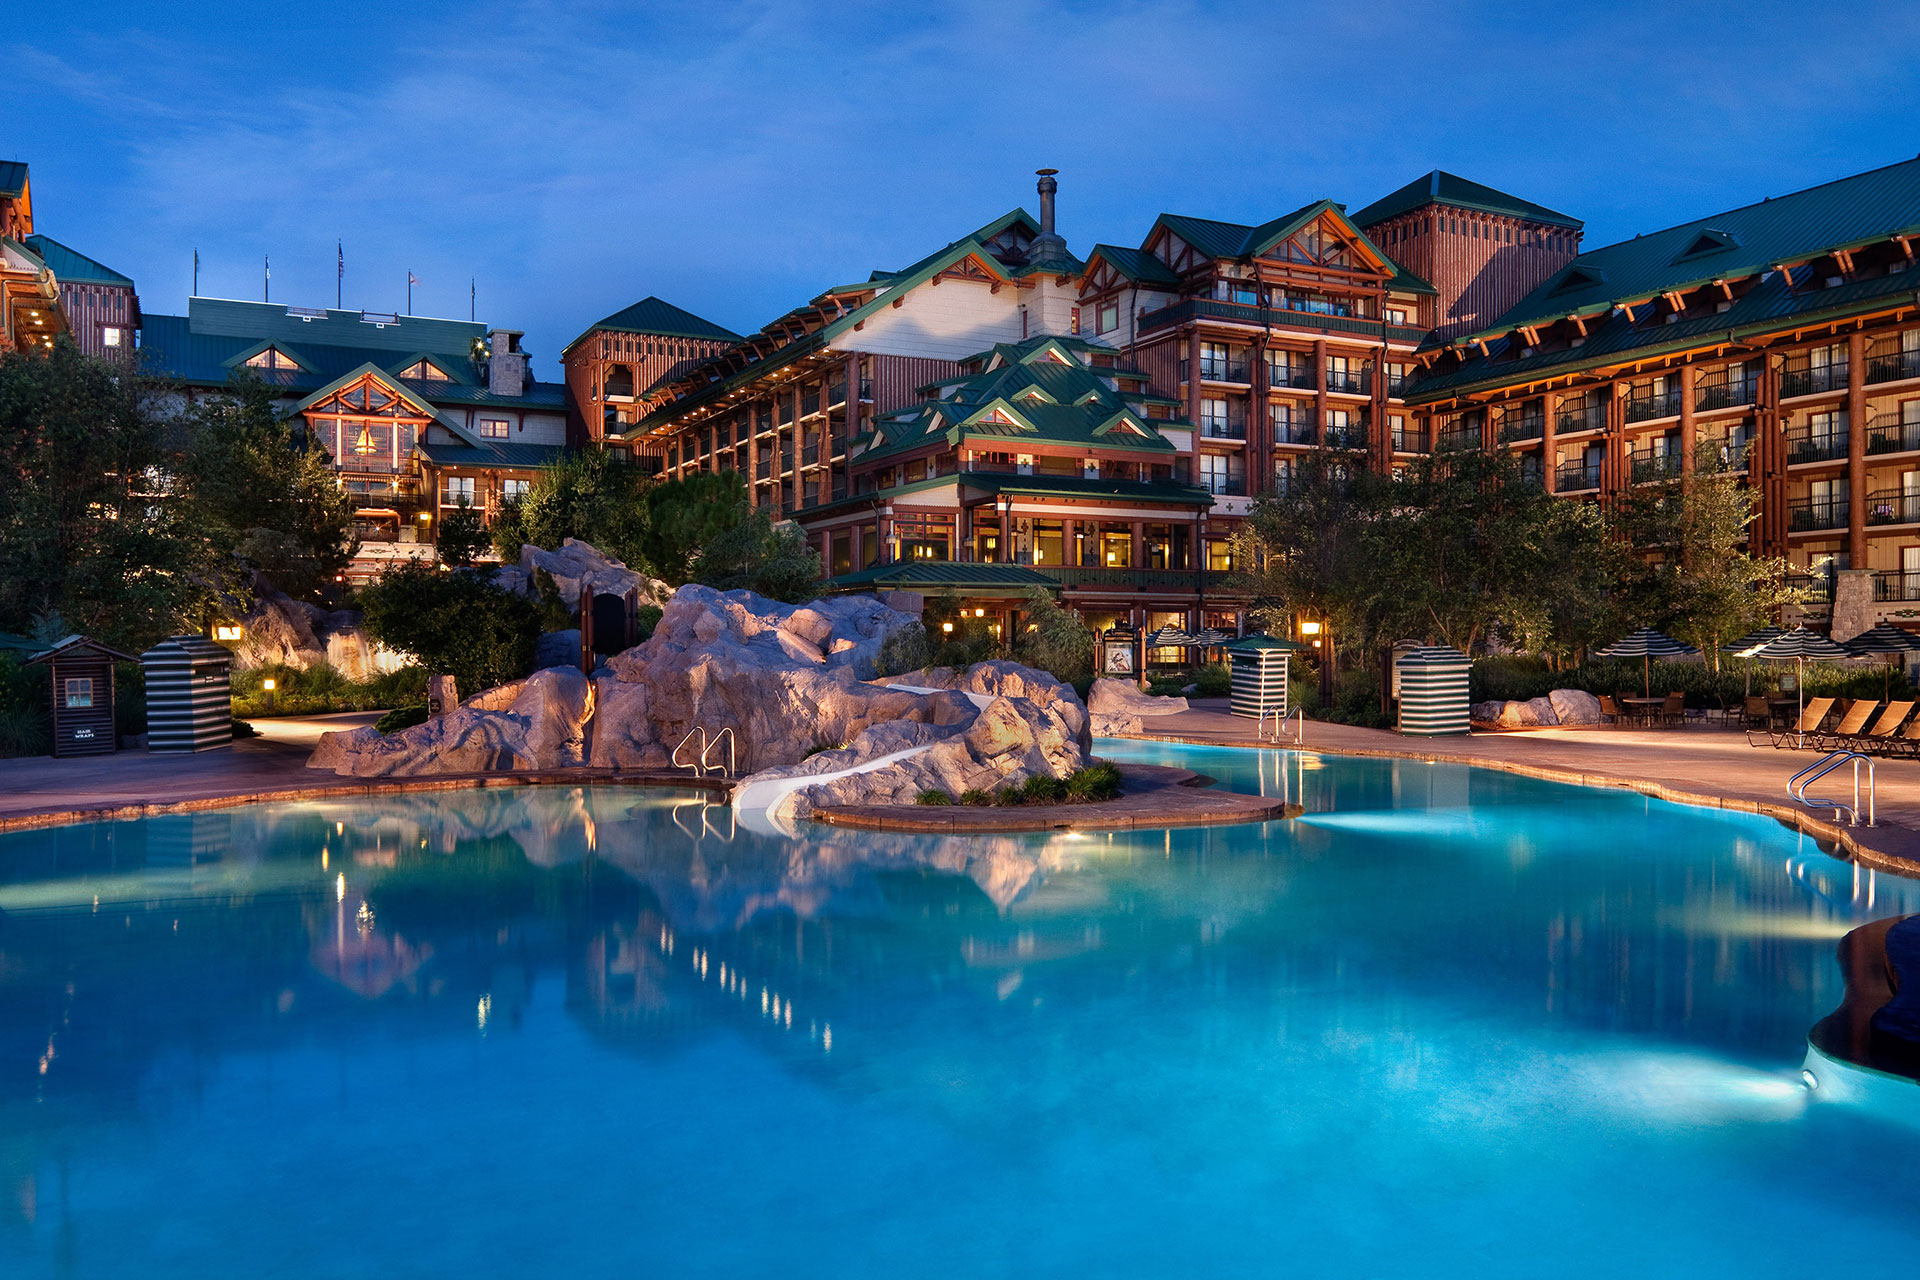 Disney's Wilderness Lodge; Courtesy of Disney